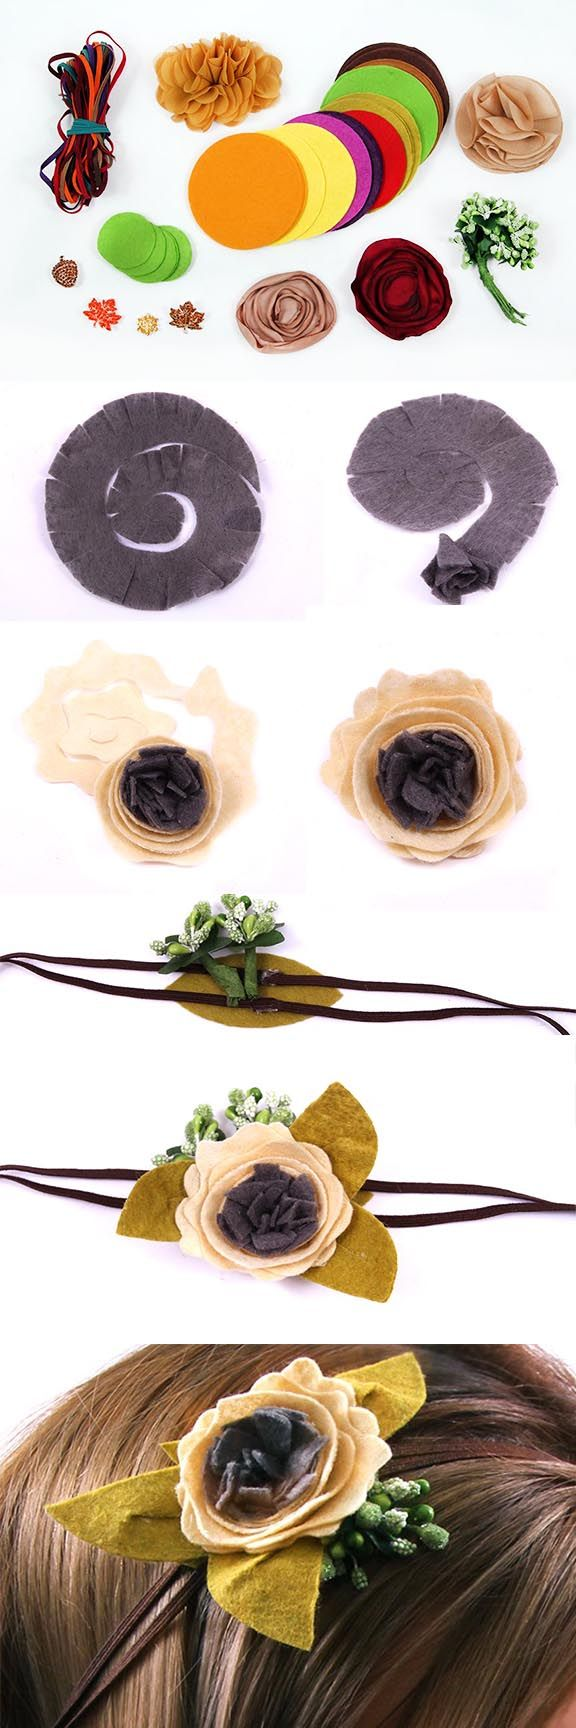 Black headbands for crafts - How To Make A Felt Flower Headband Add A New Style Of Felt Flower To